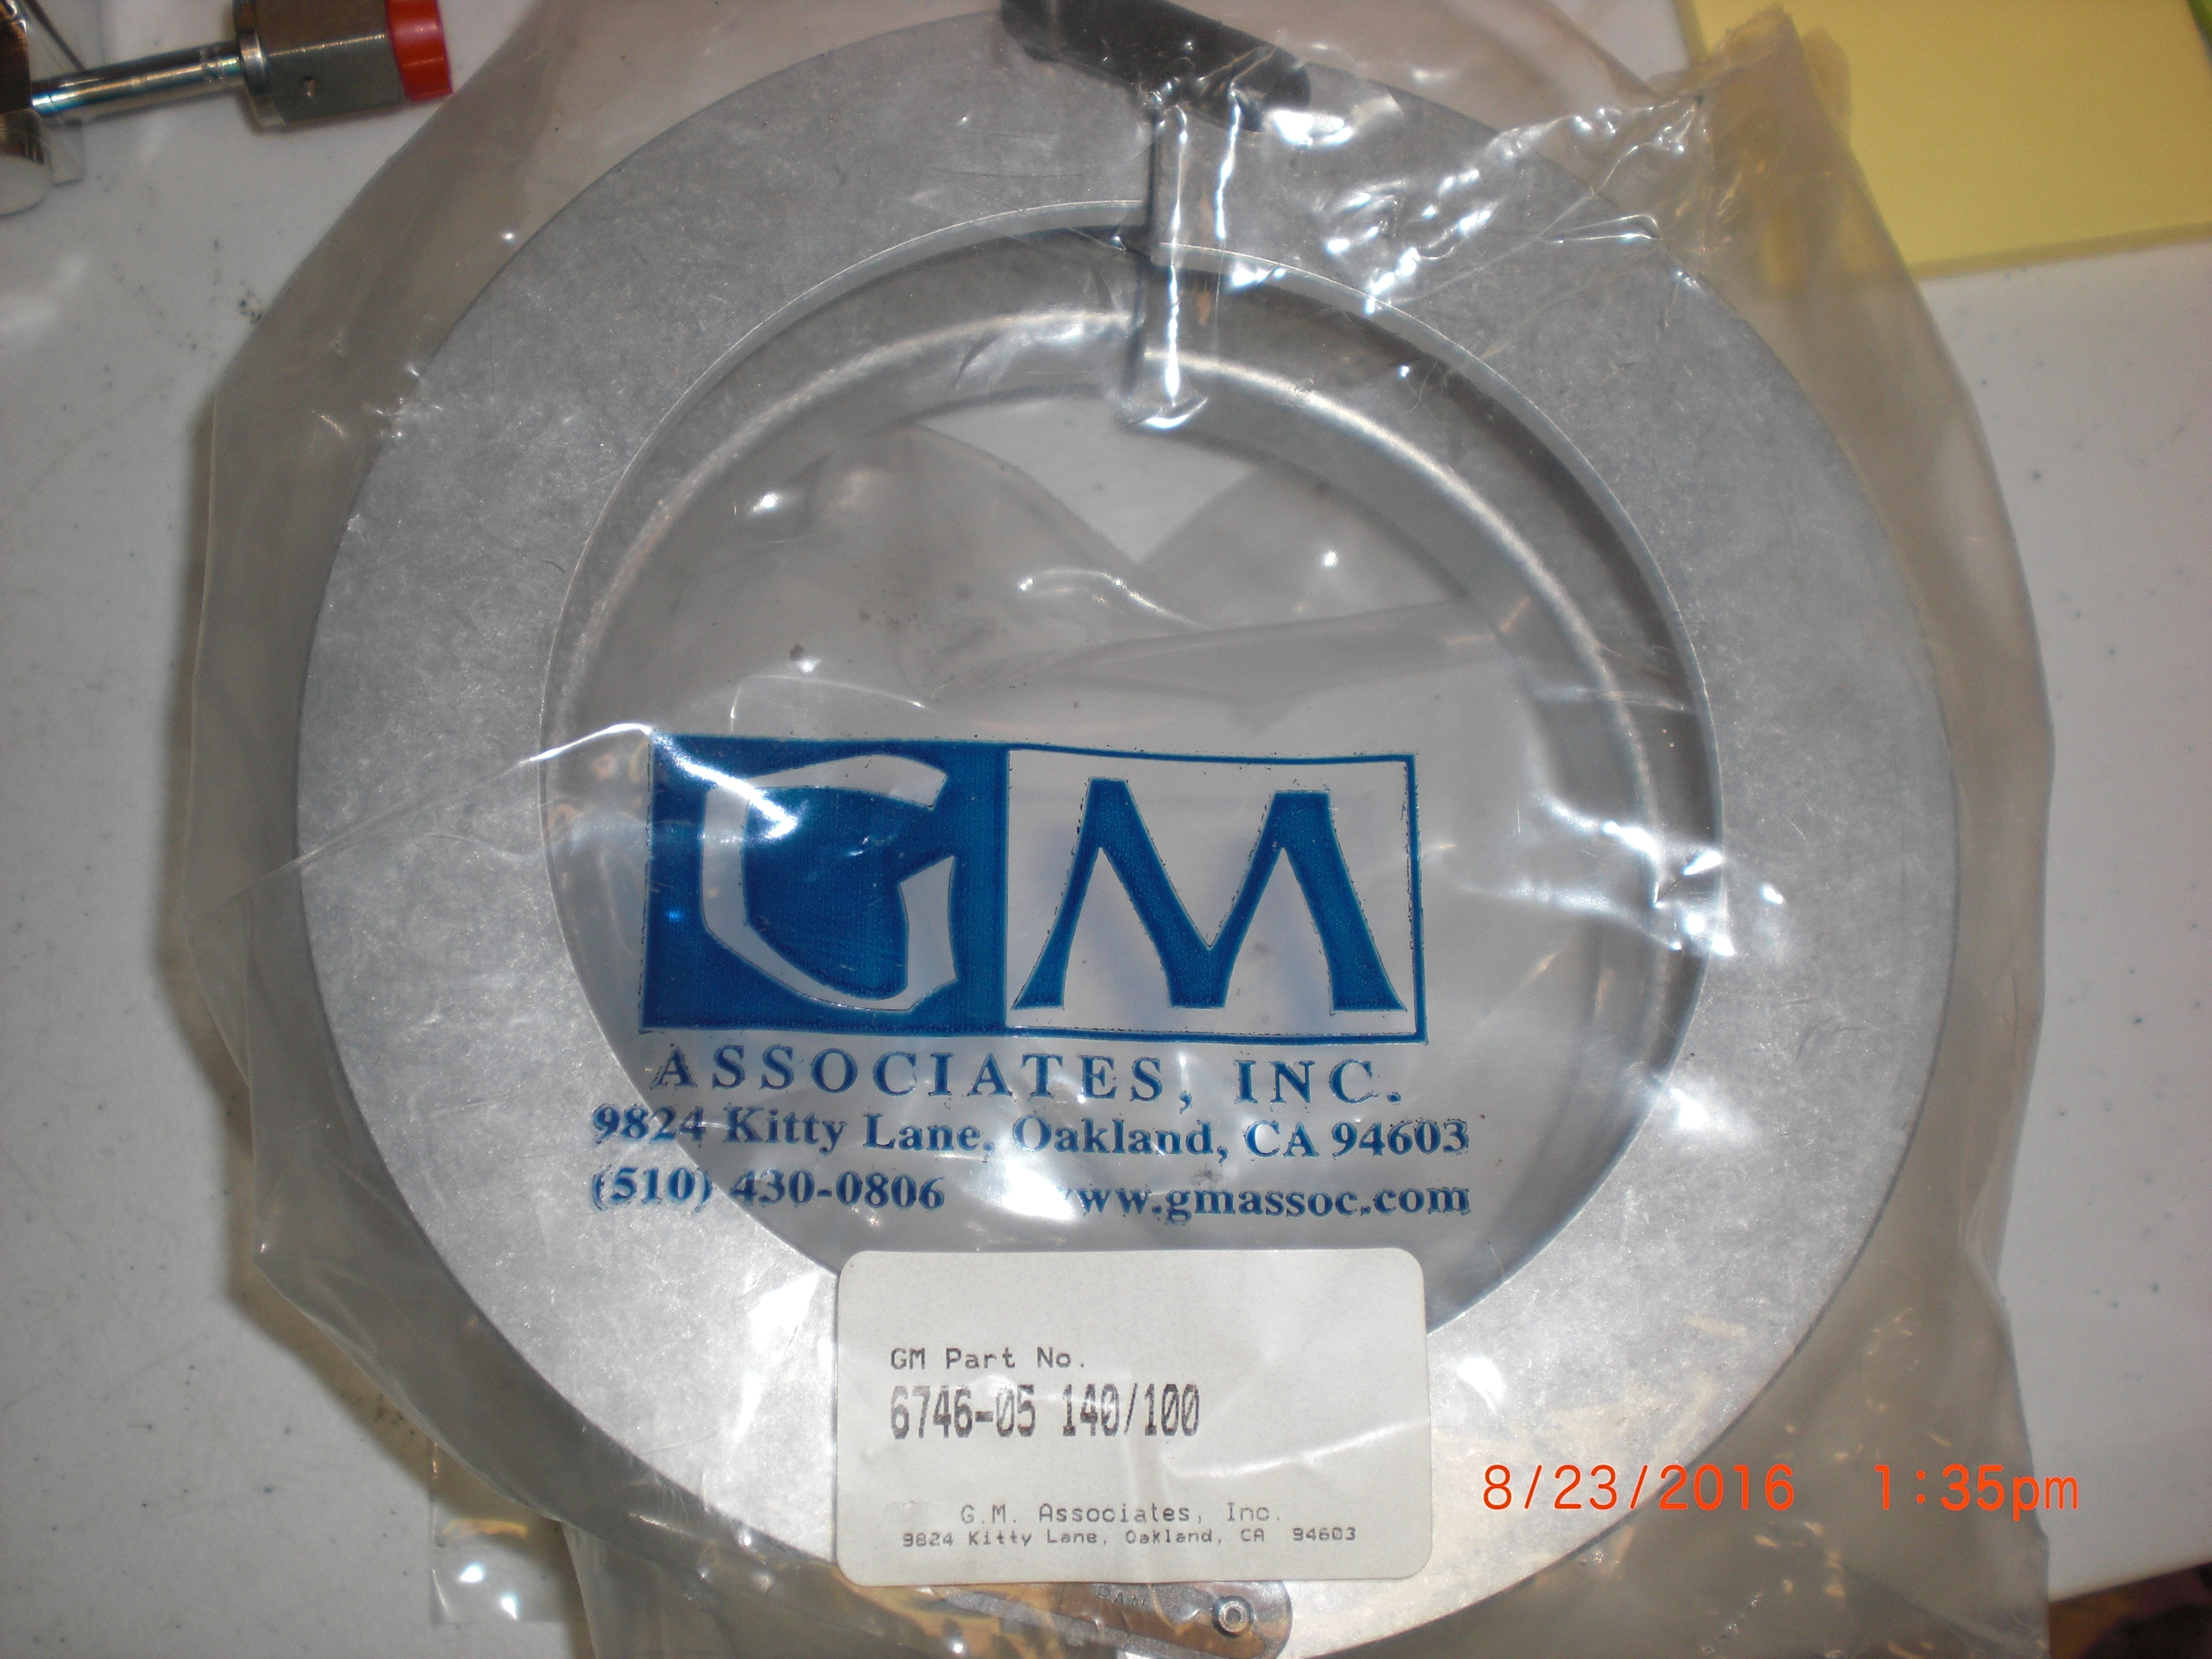 Clamp  140/100 Apparatus  for Quartz  GM ASSOCIATES 6746-05